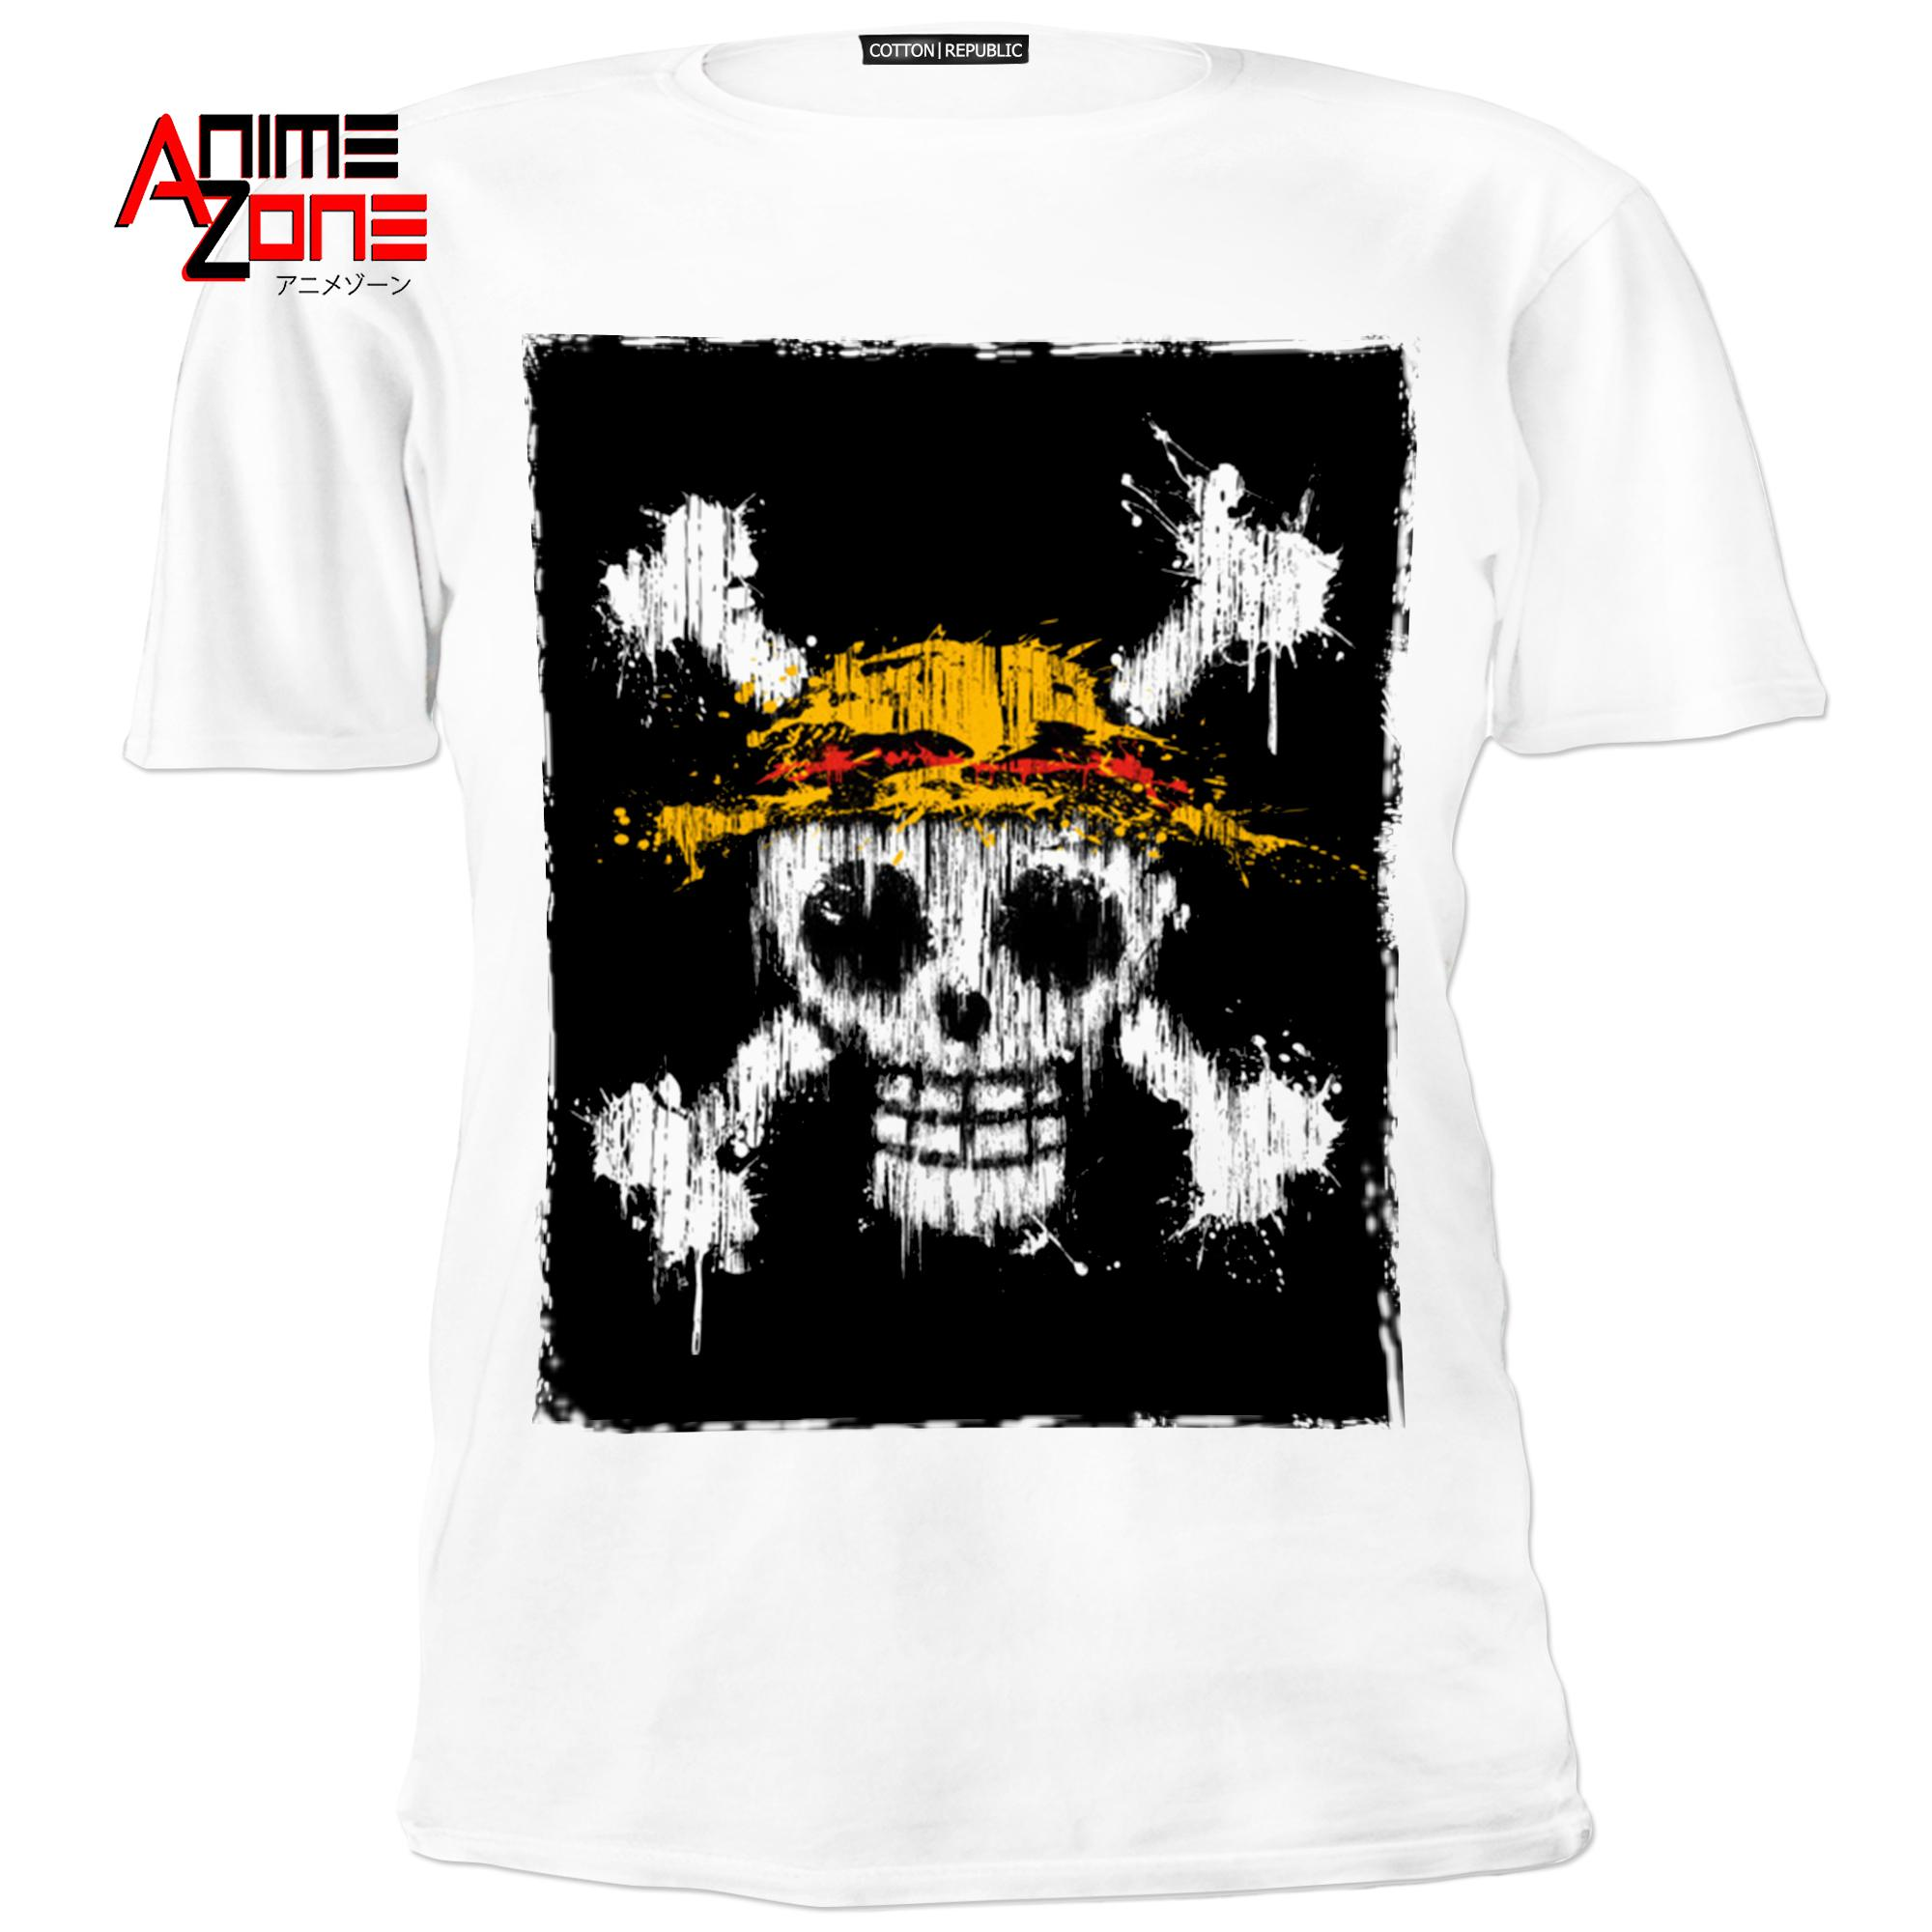 fa99055ca004e Anime Zone One Piece Strawhat Pirates Edition Cotton Printed Unisex T-Shirt